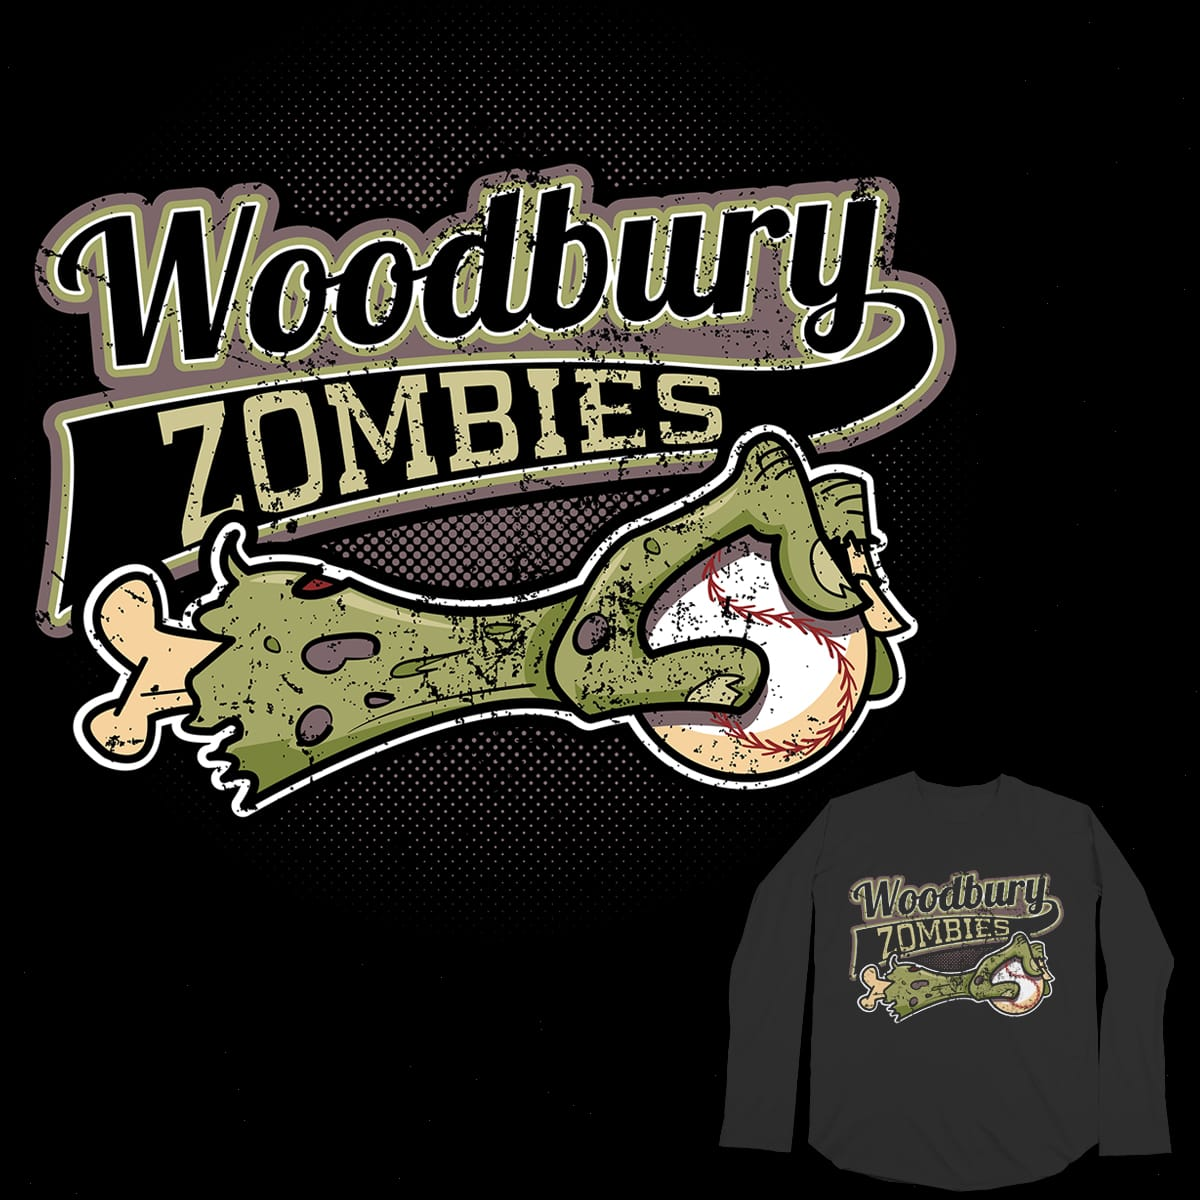 Woodbury Zombies Baseball Club by Timmy Toons on Threadless